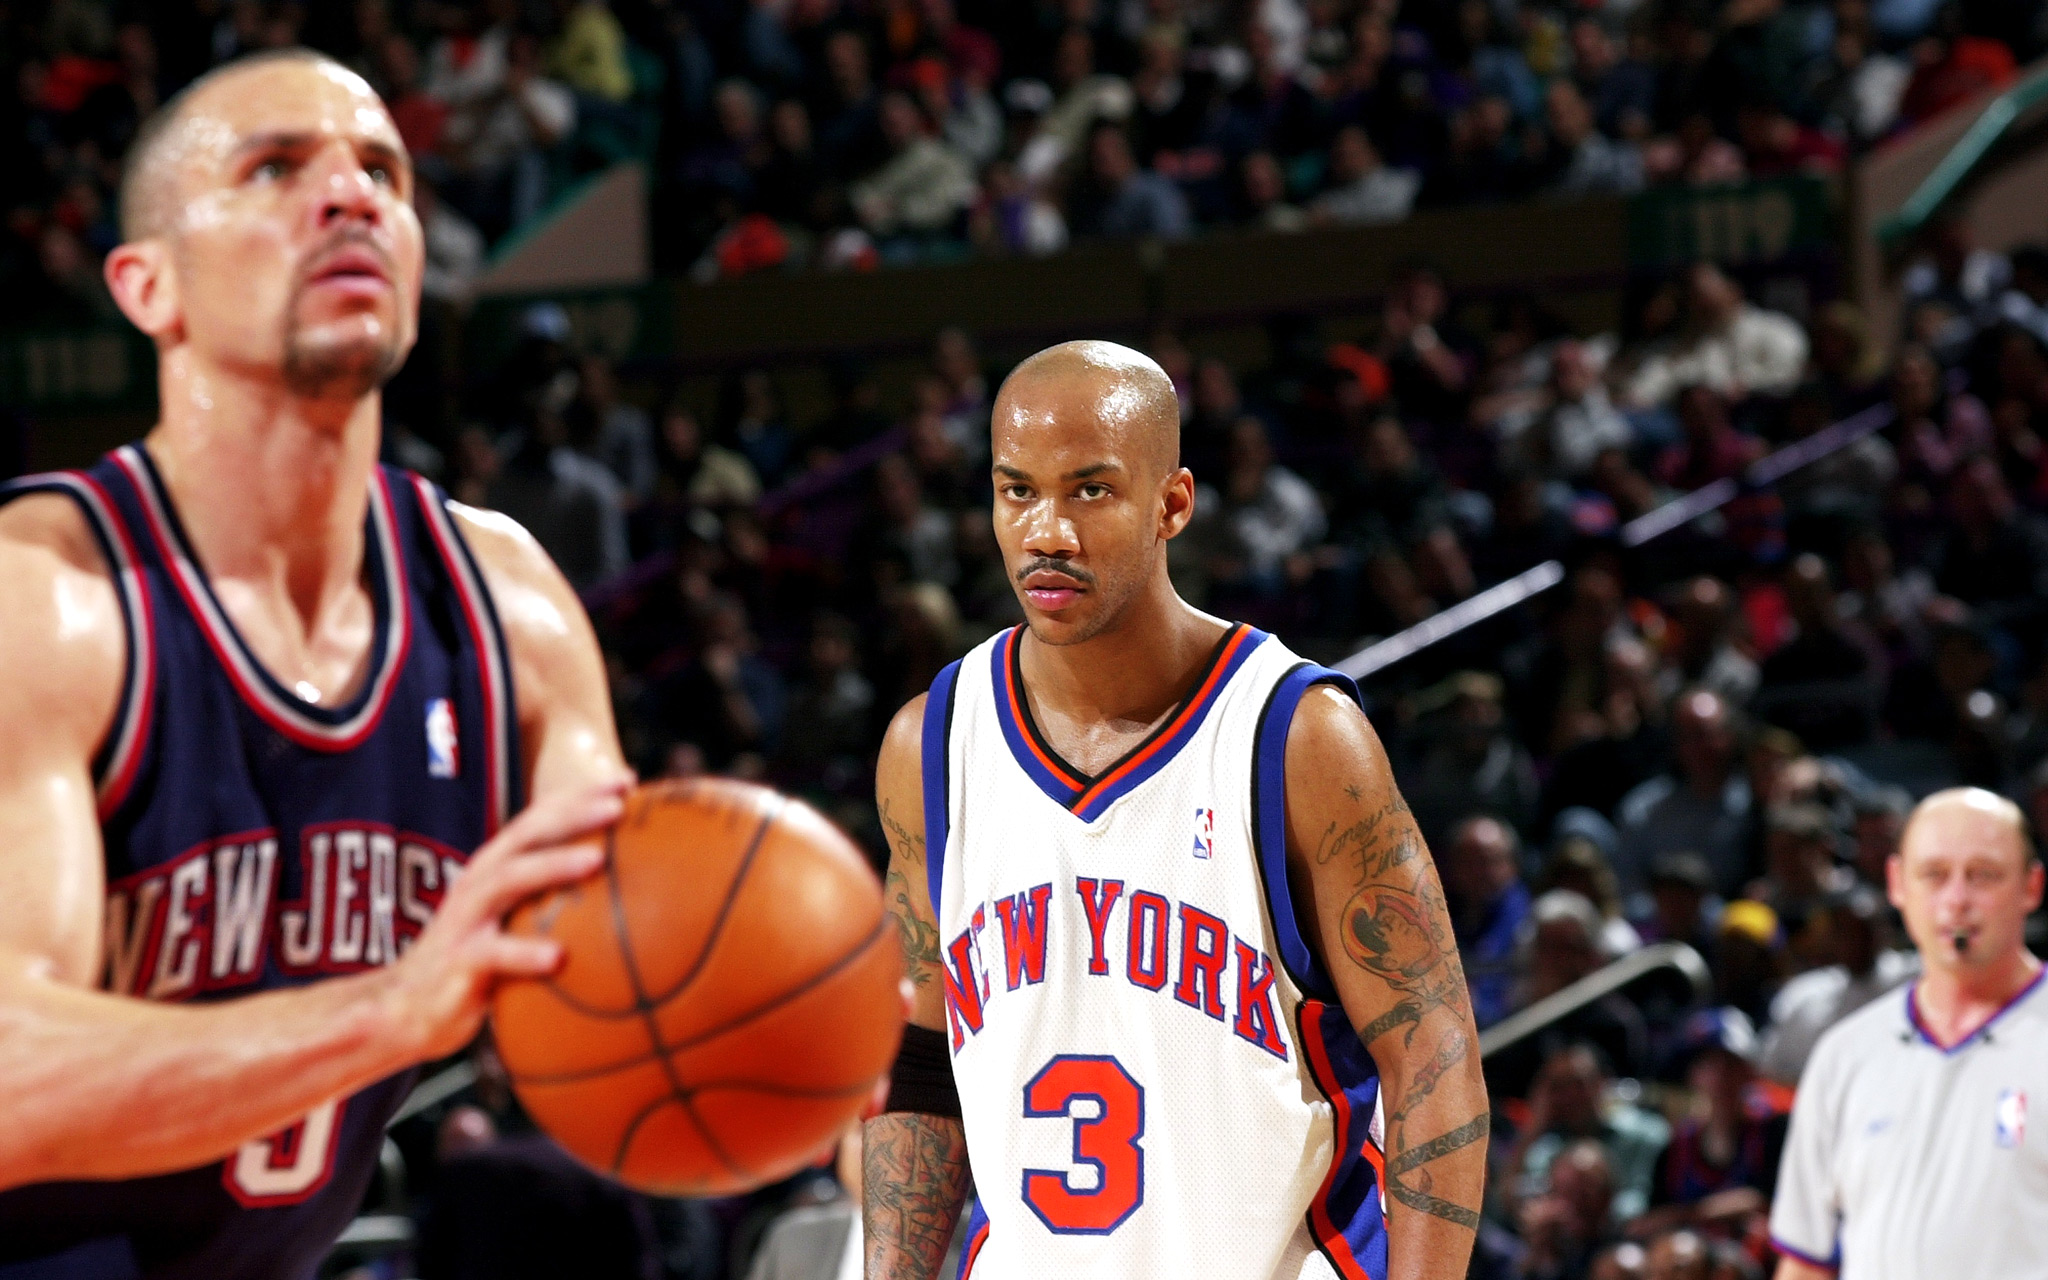 Jason Kidd and Stephon Marbury